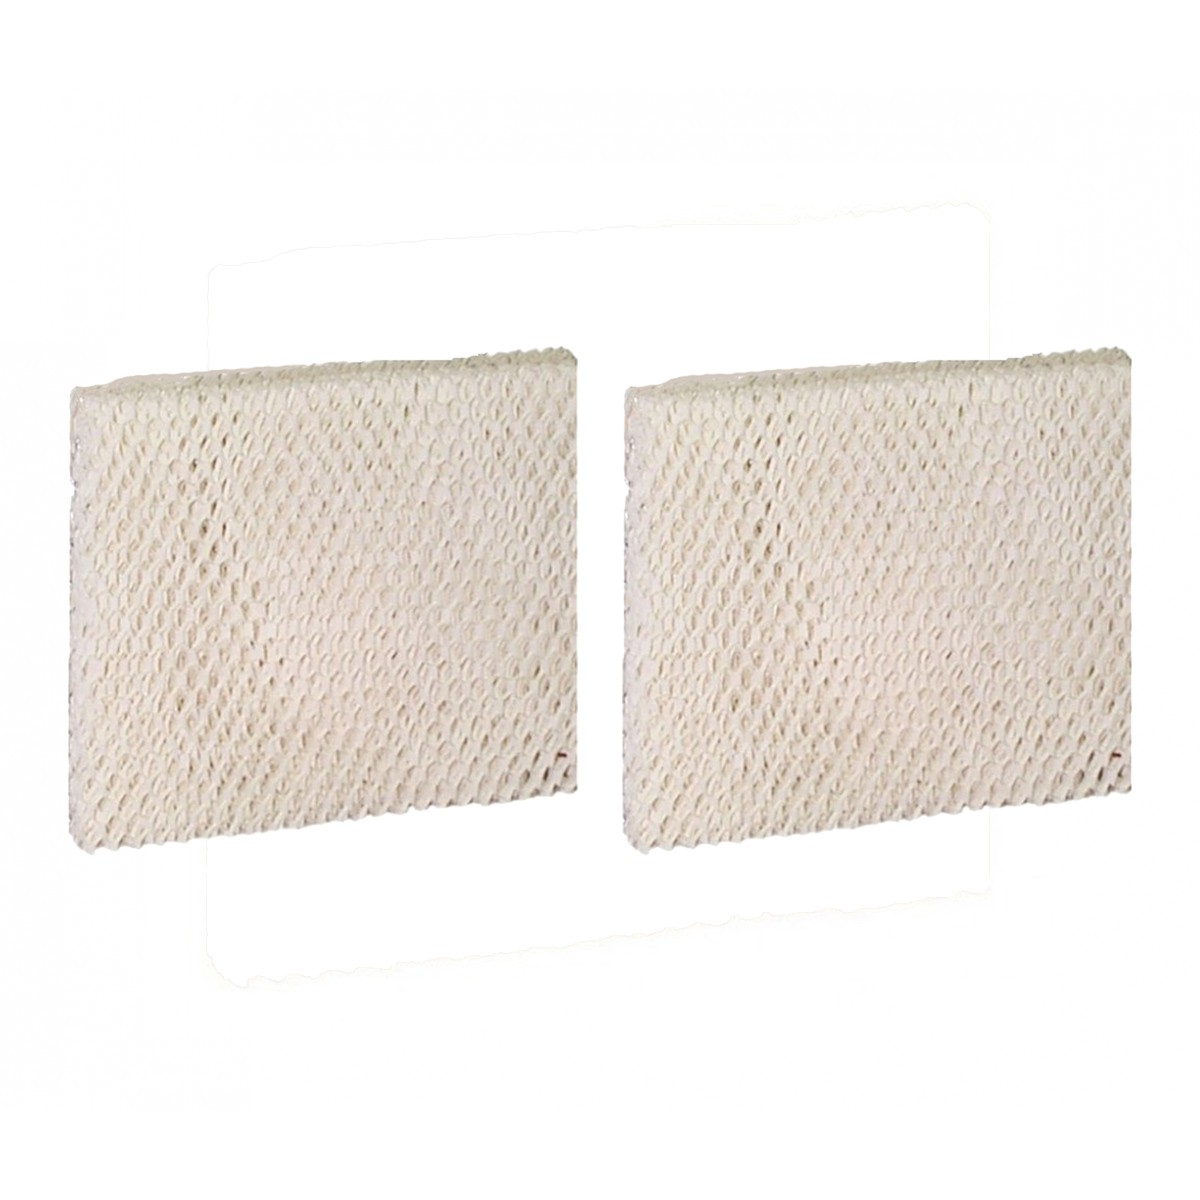 Comparable Humidifier Wick Filter by Tier1 > Catalog Advanced Search #7E624D